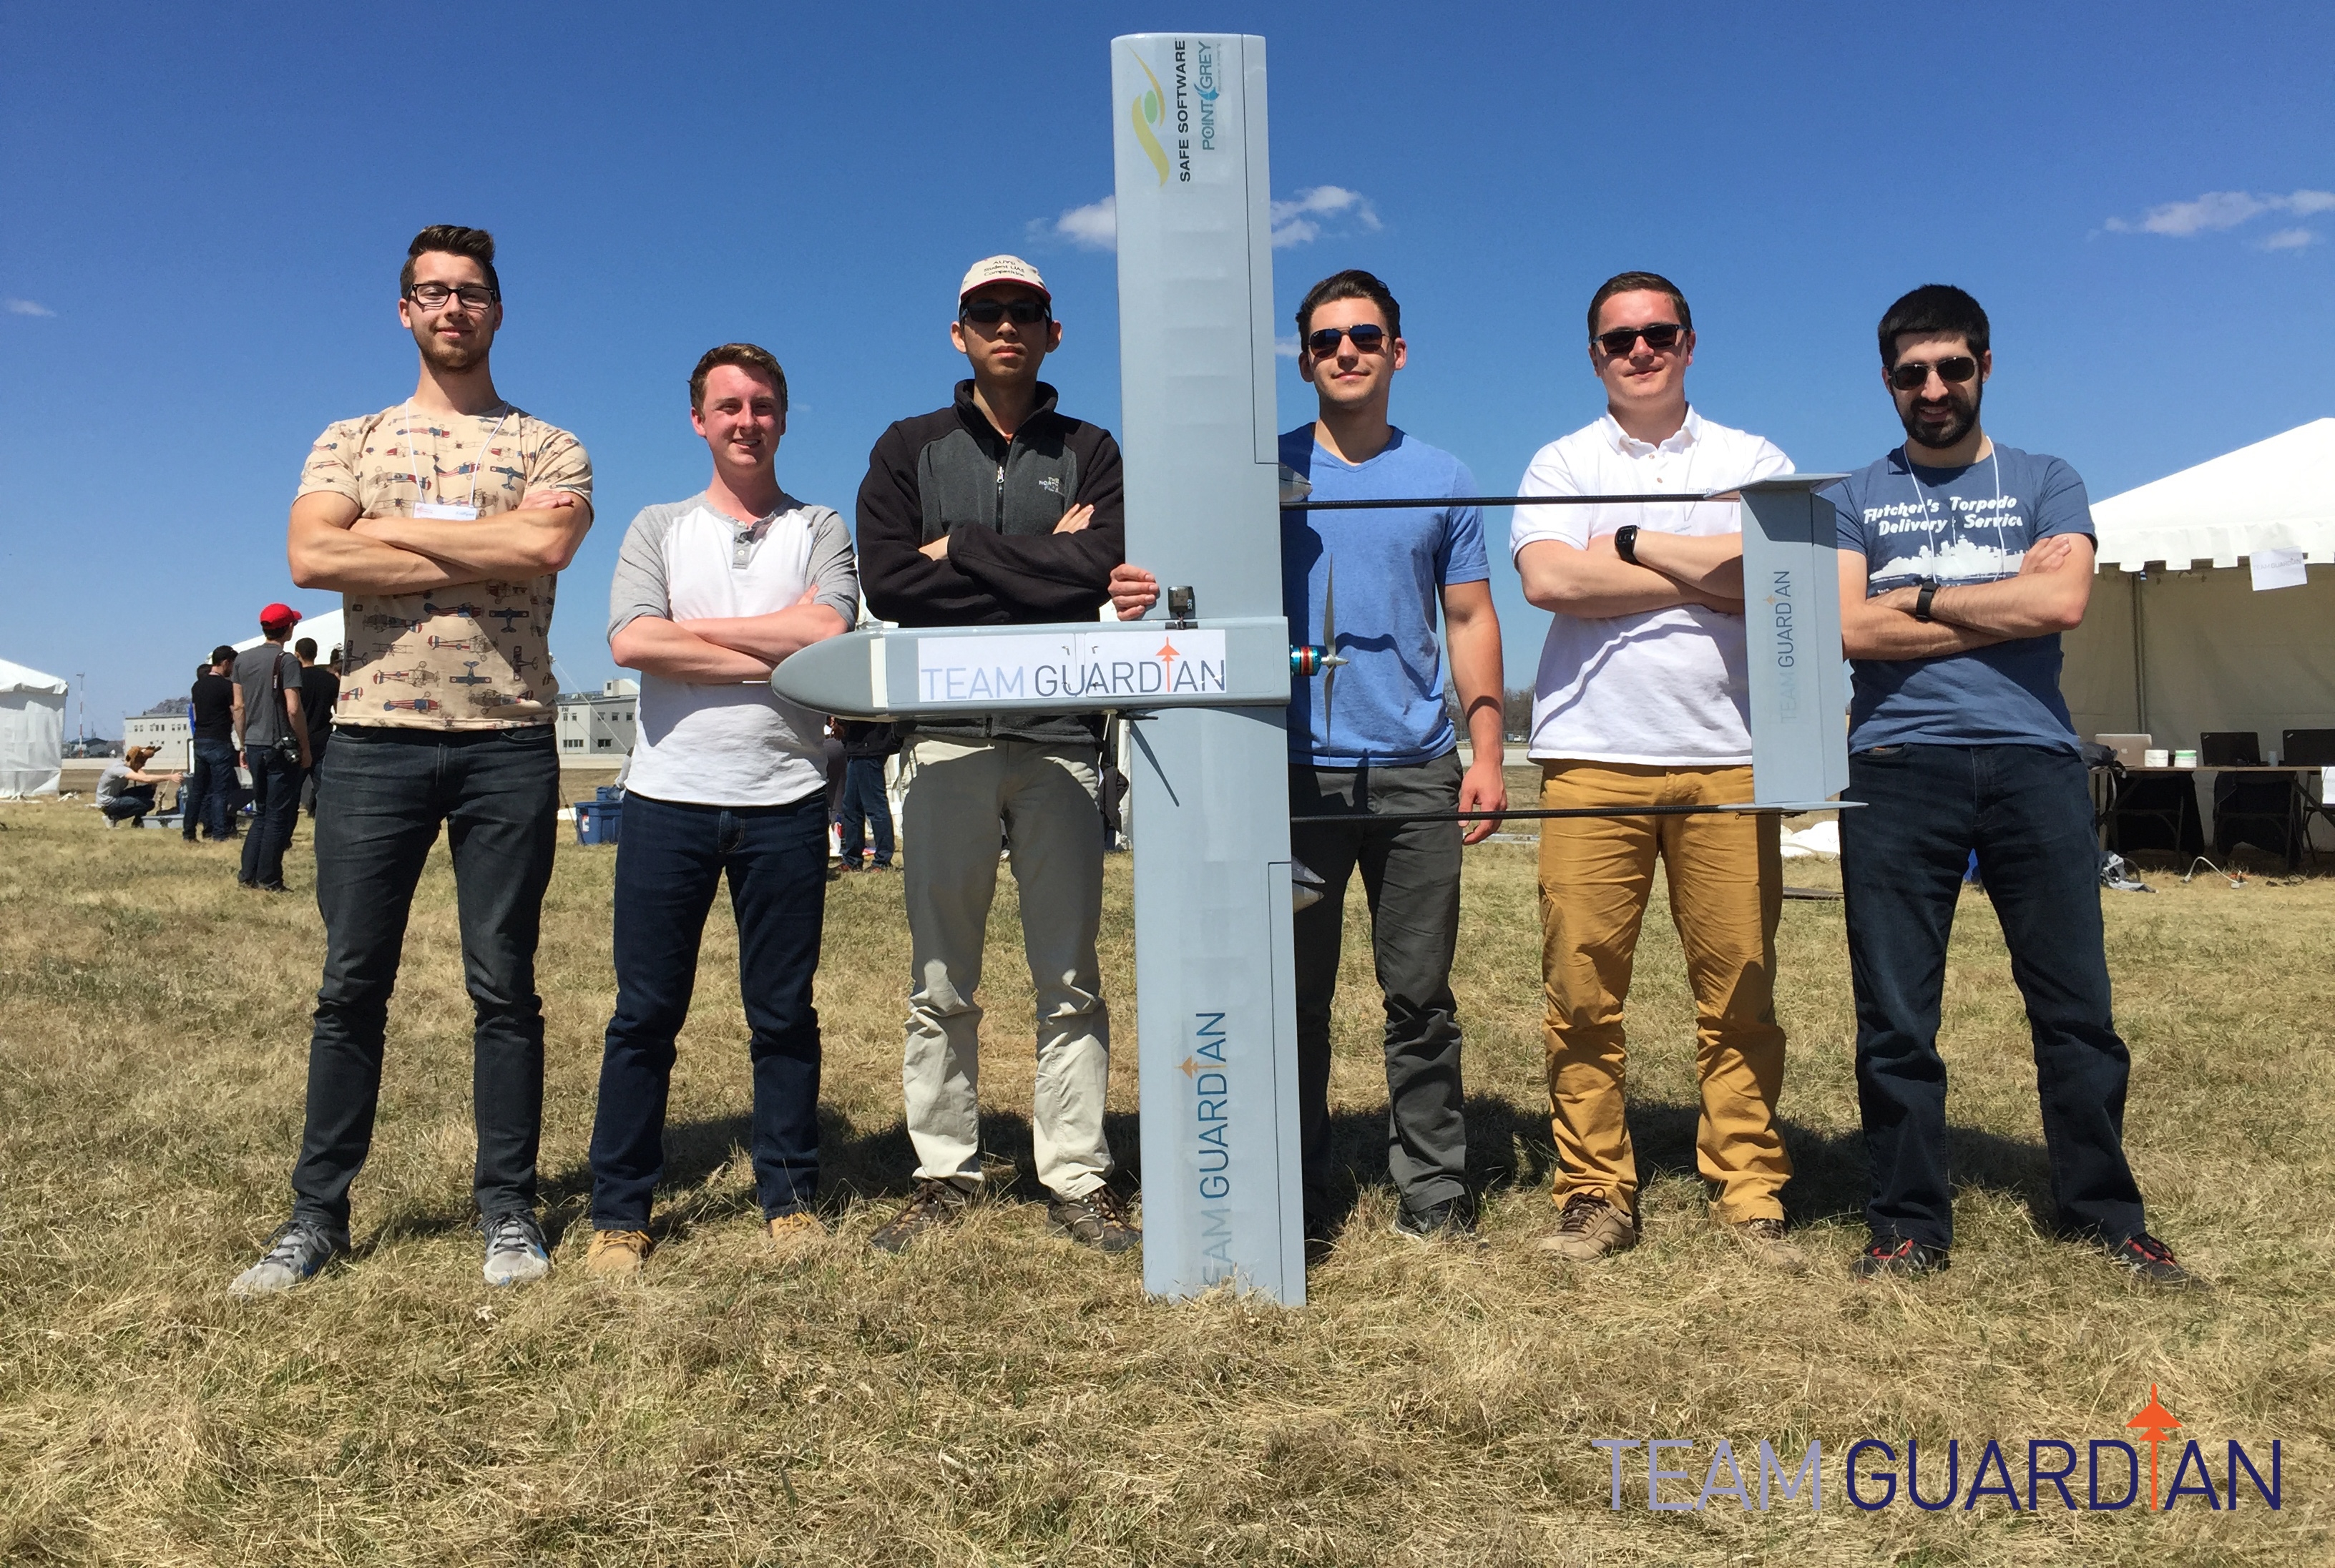 Team Guardian members Kris Gjernes, Richard Arthurs, Allan Lee, Mike Kontanist, Nikita Bazhanov and Josh Vazquez pose with Hugin, one of their unmanned aerial vehicles. Hugin was the team